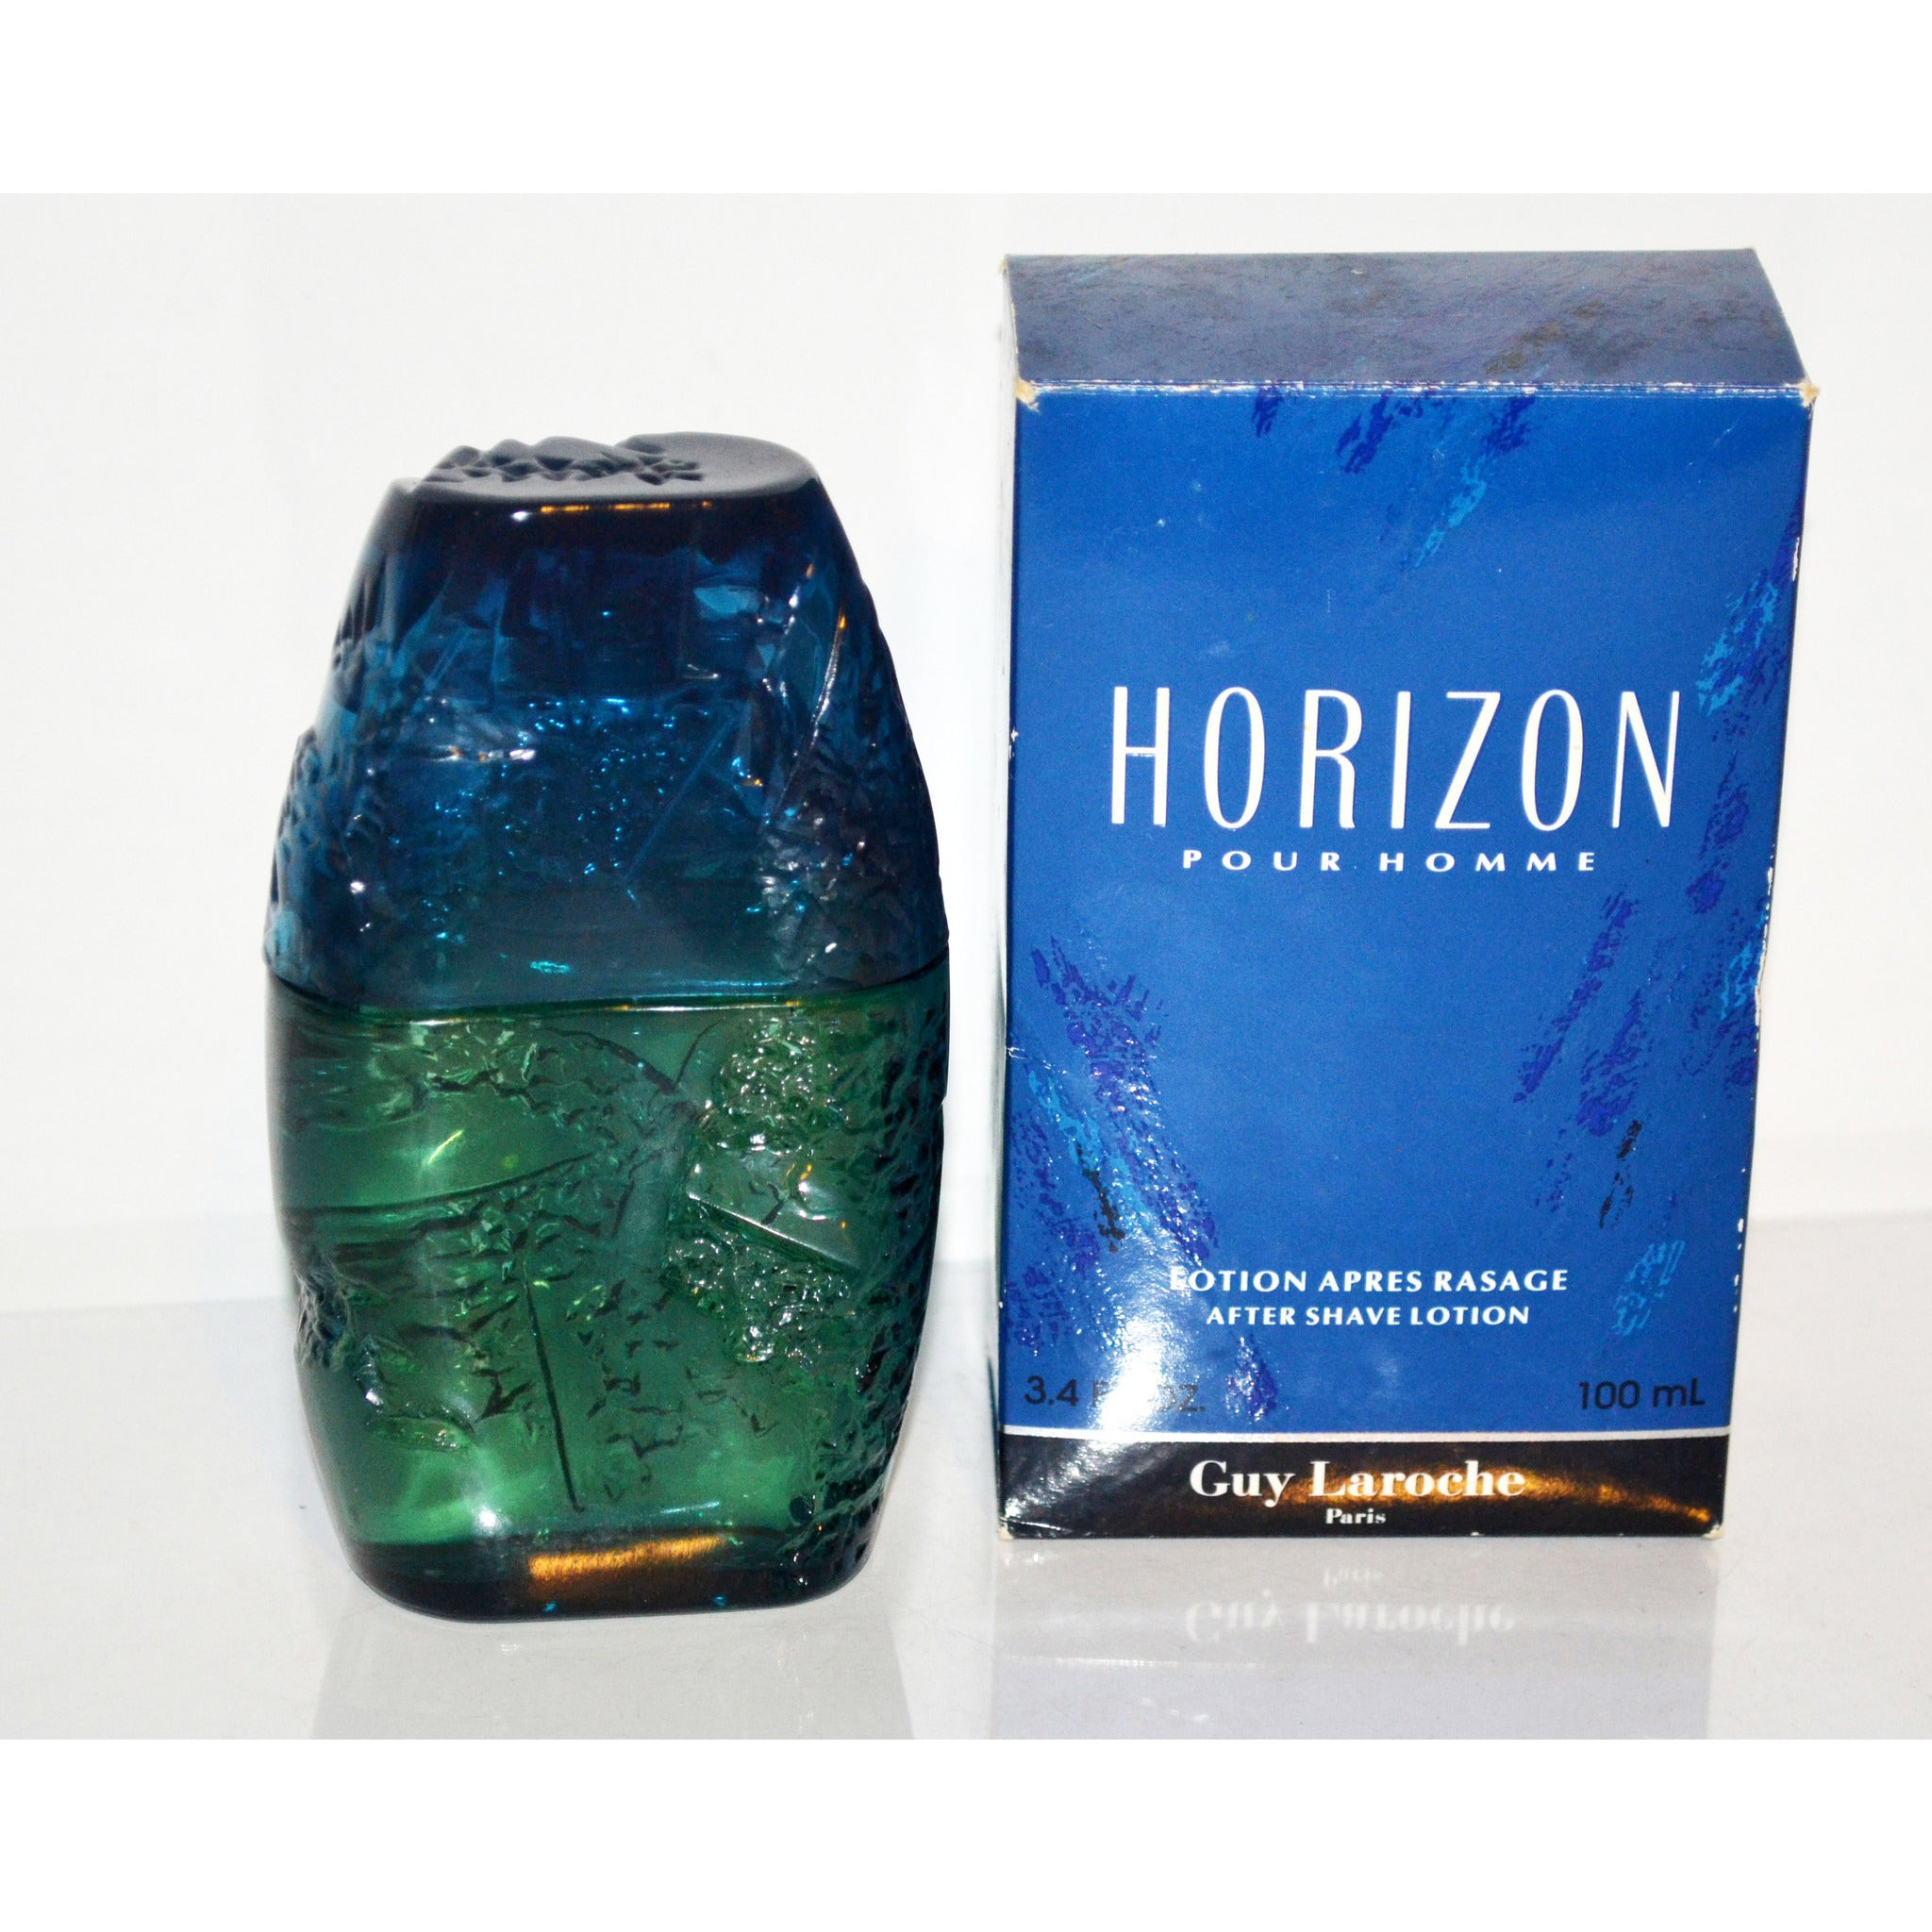 Vintage Horizon After Shave Lotion By Guy Laroche